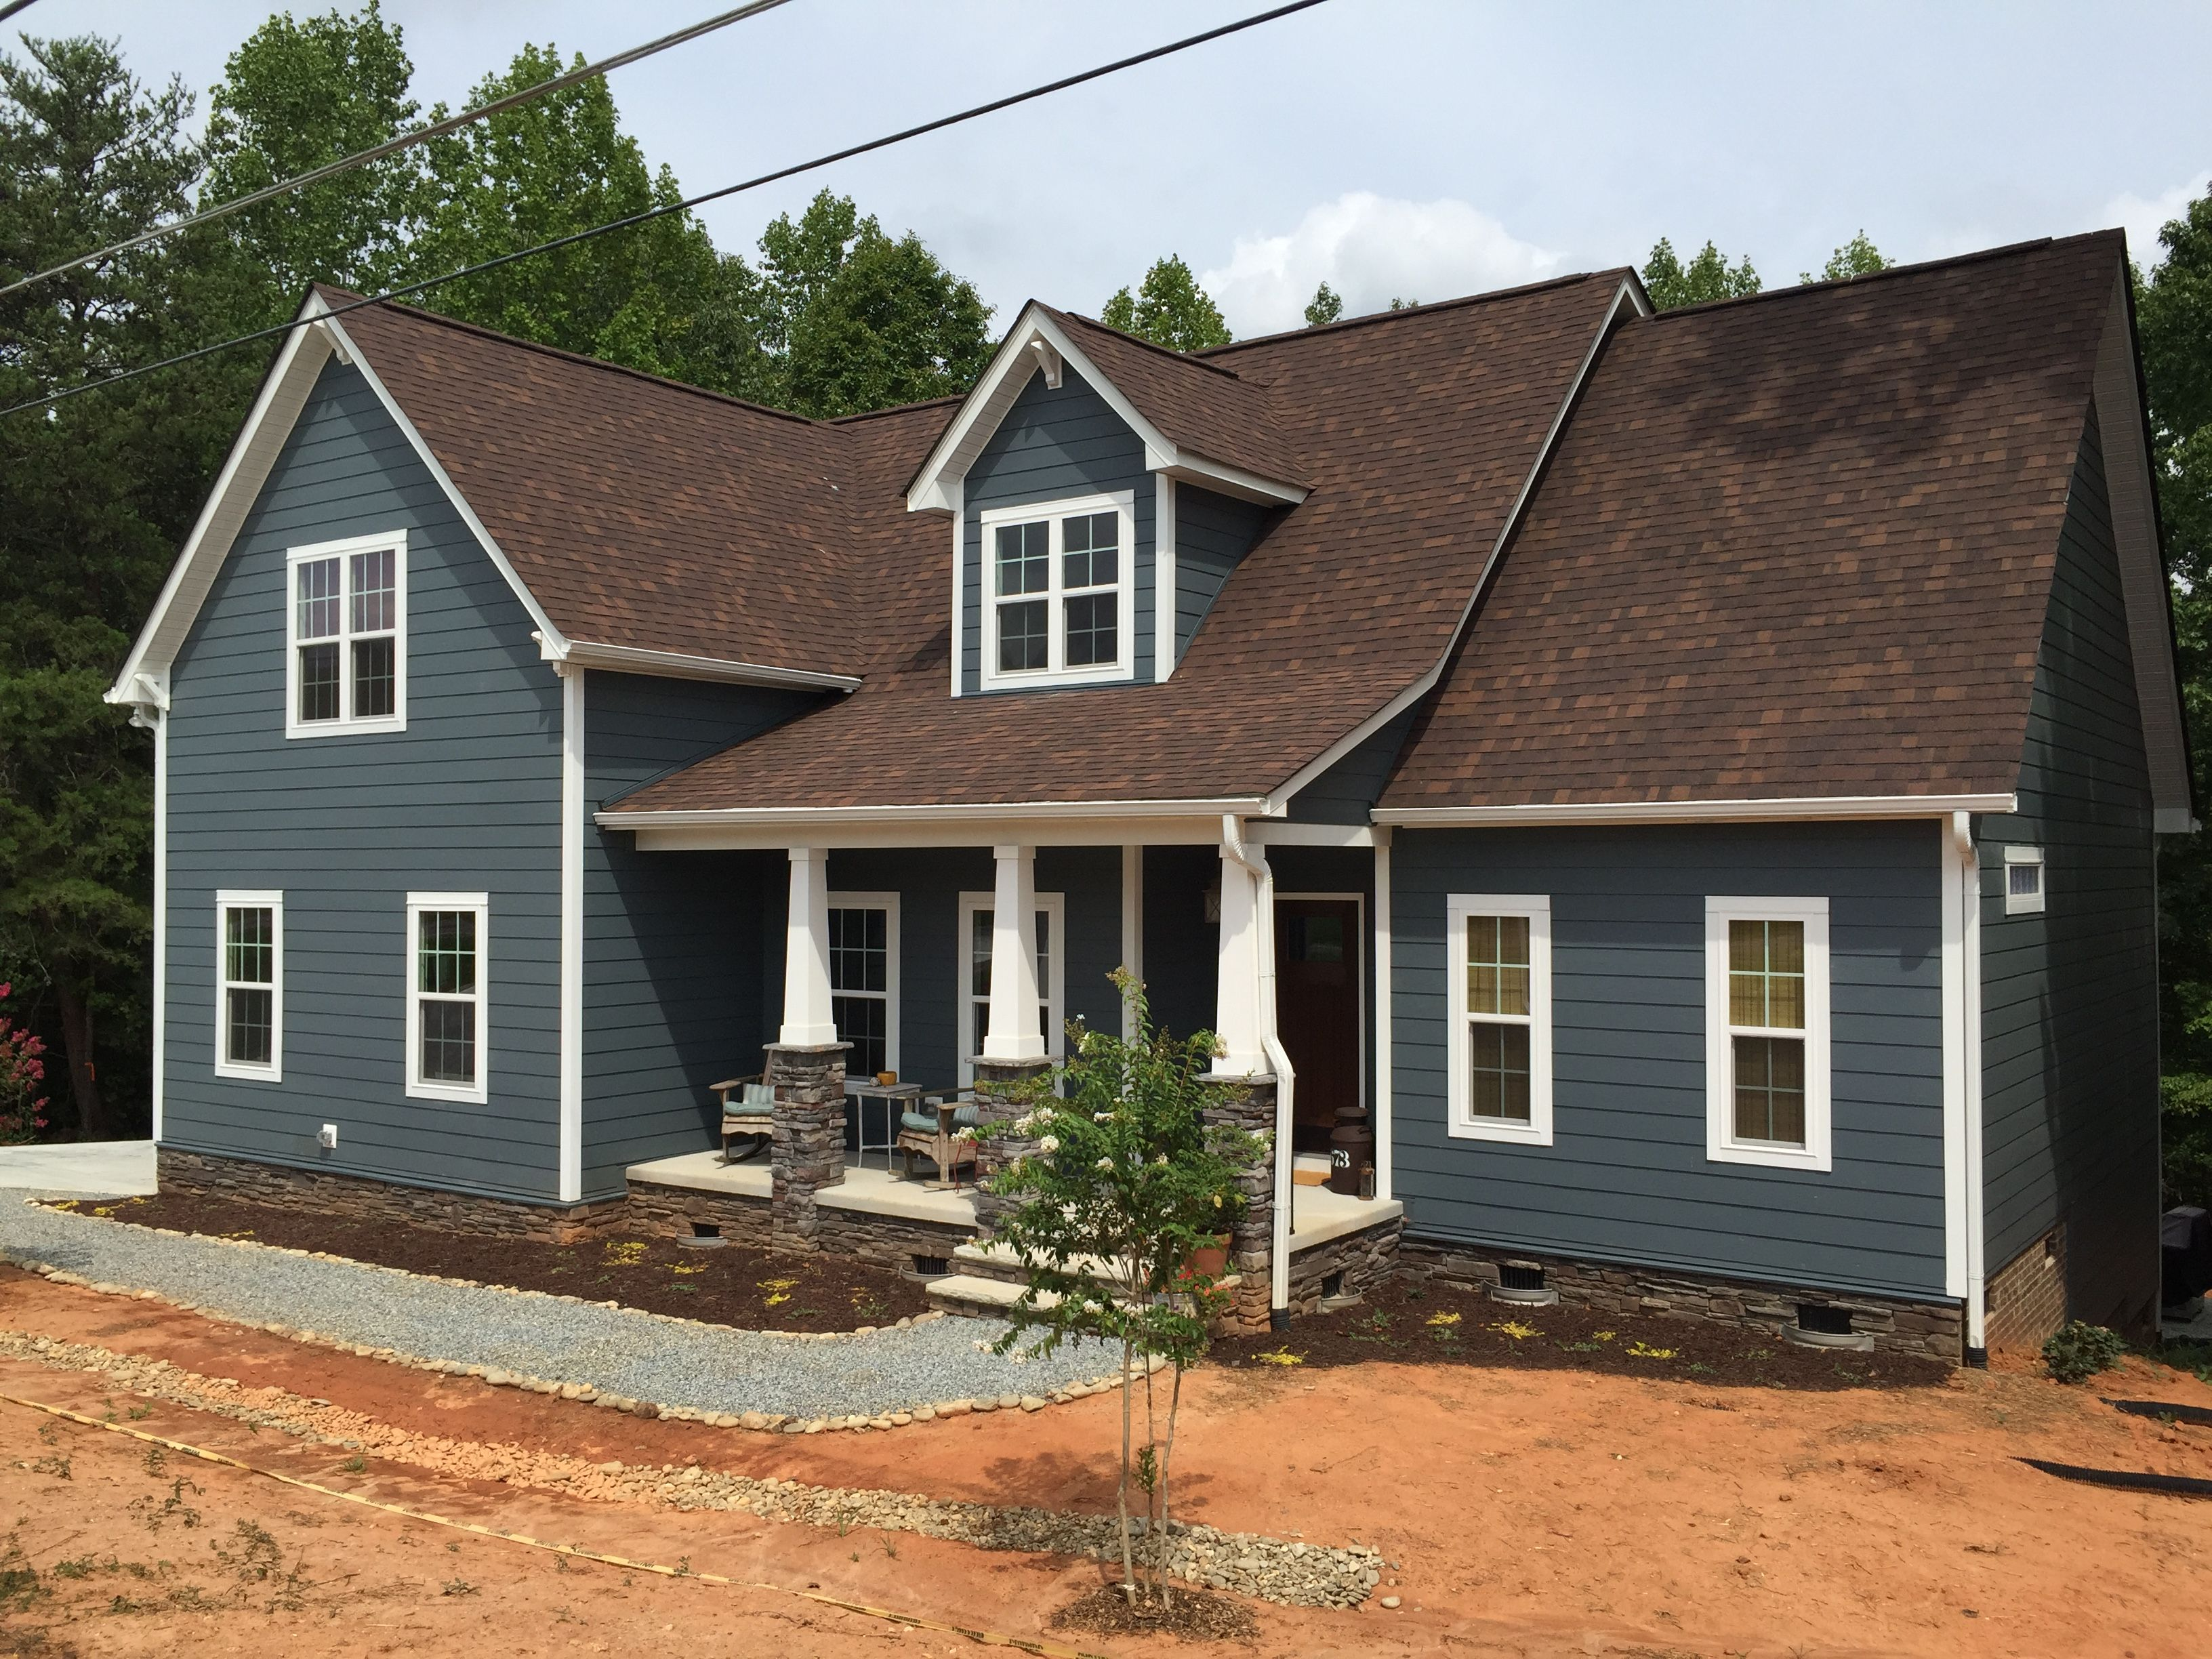 Blue Craftsman Home, James Hardie Evening Blue, Brown Roof, Ledgestone, Pea  Gravel Walkway